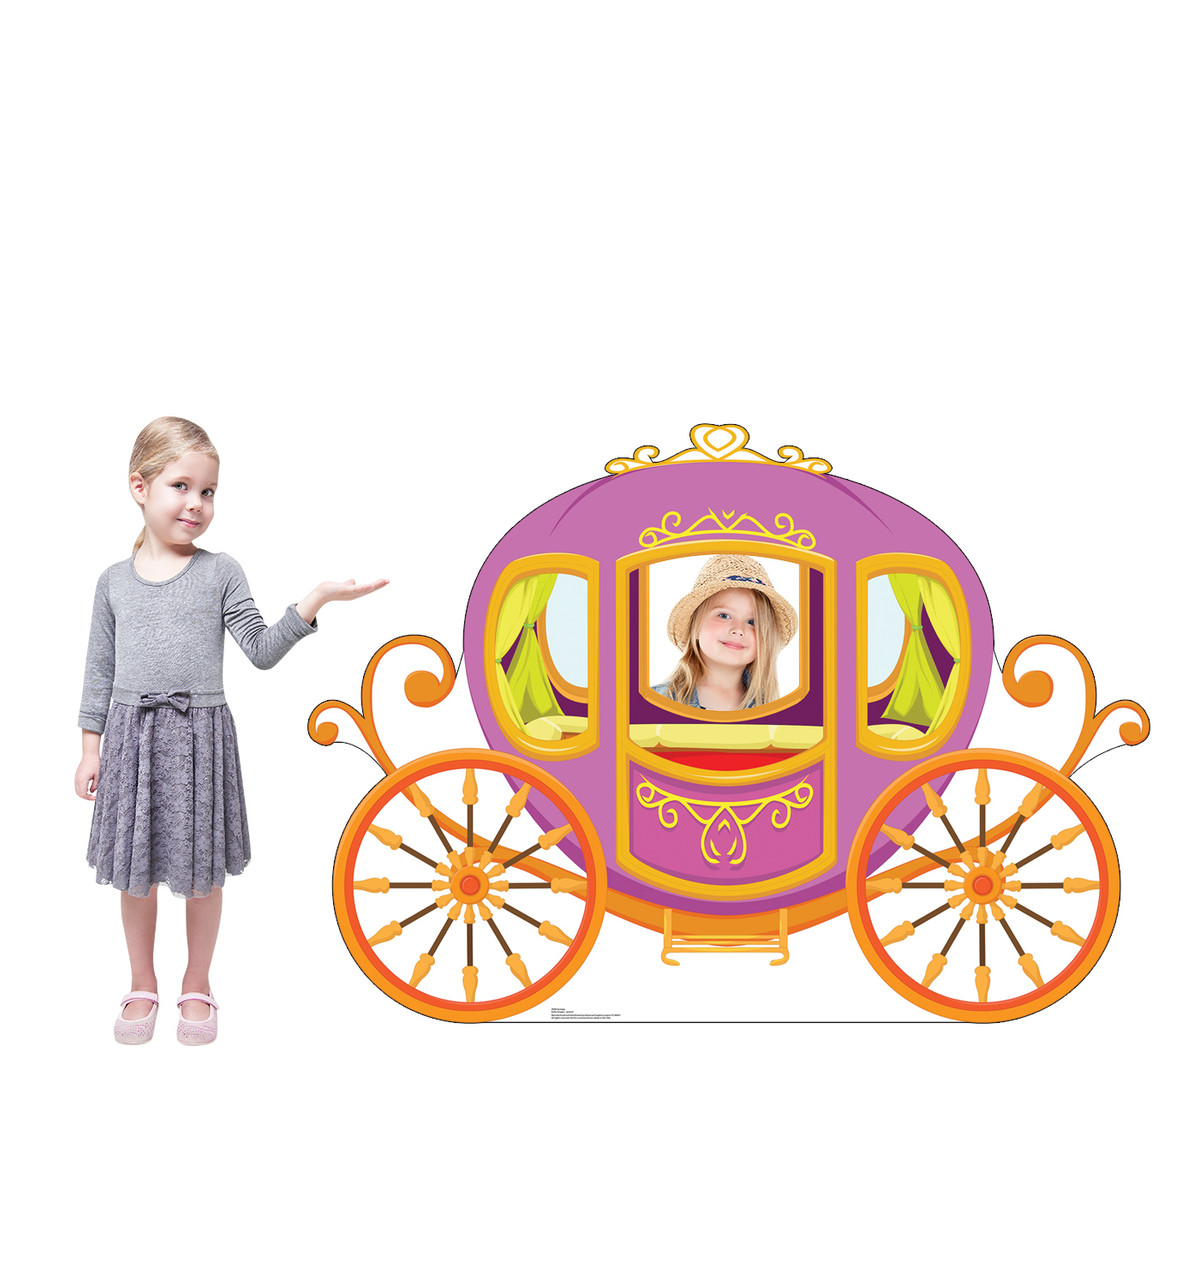 Life-size cardboard standin of a Carriage Lifesize